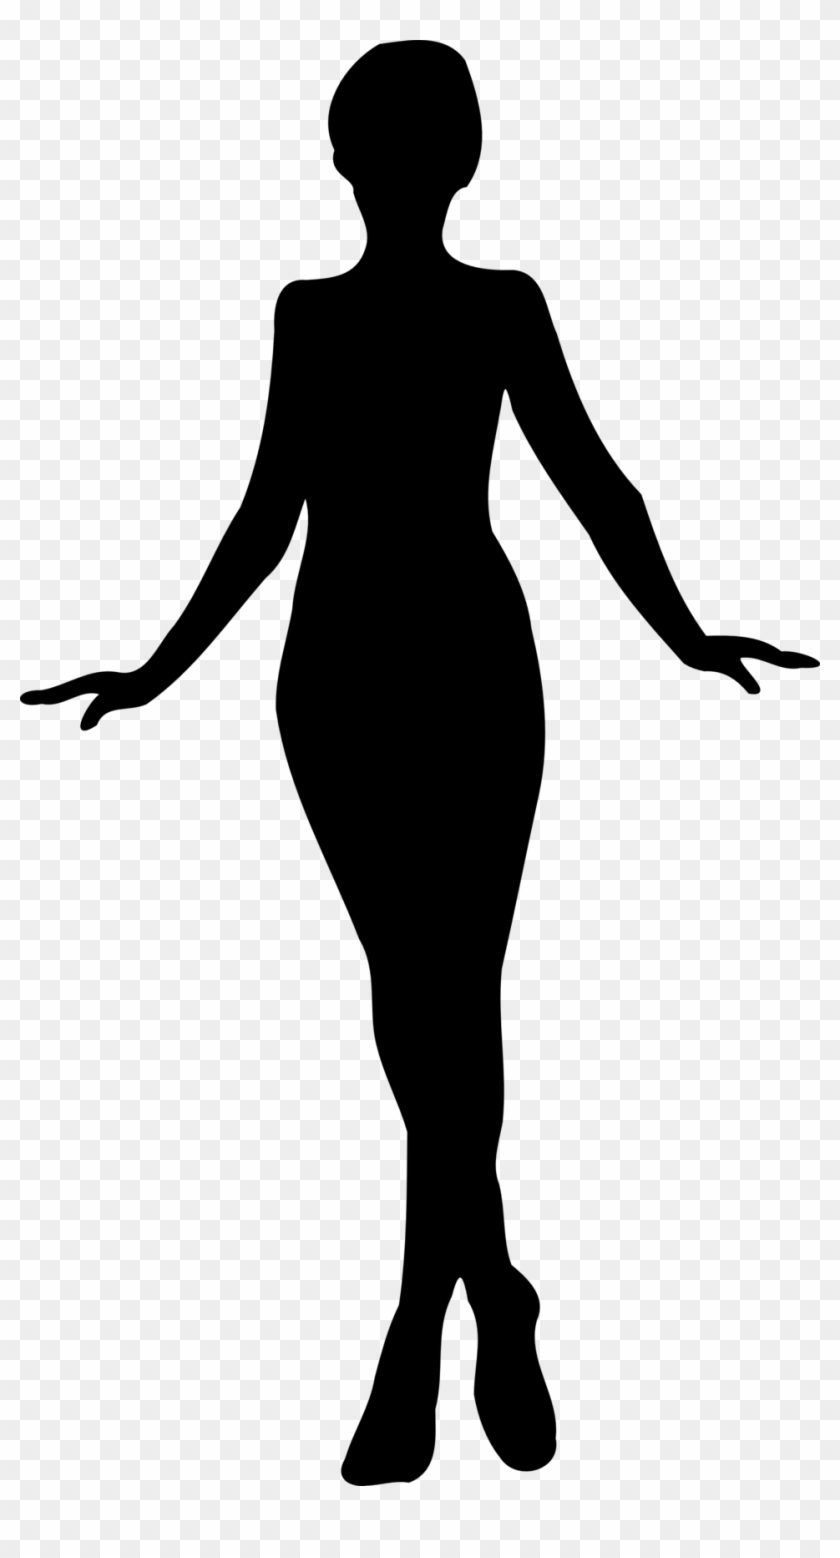 Public Domain Clip Art Image Illustration Of A Female - Silhouette Of A Woman #22991